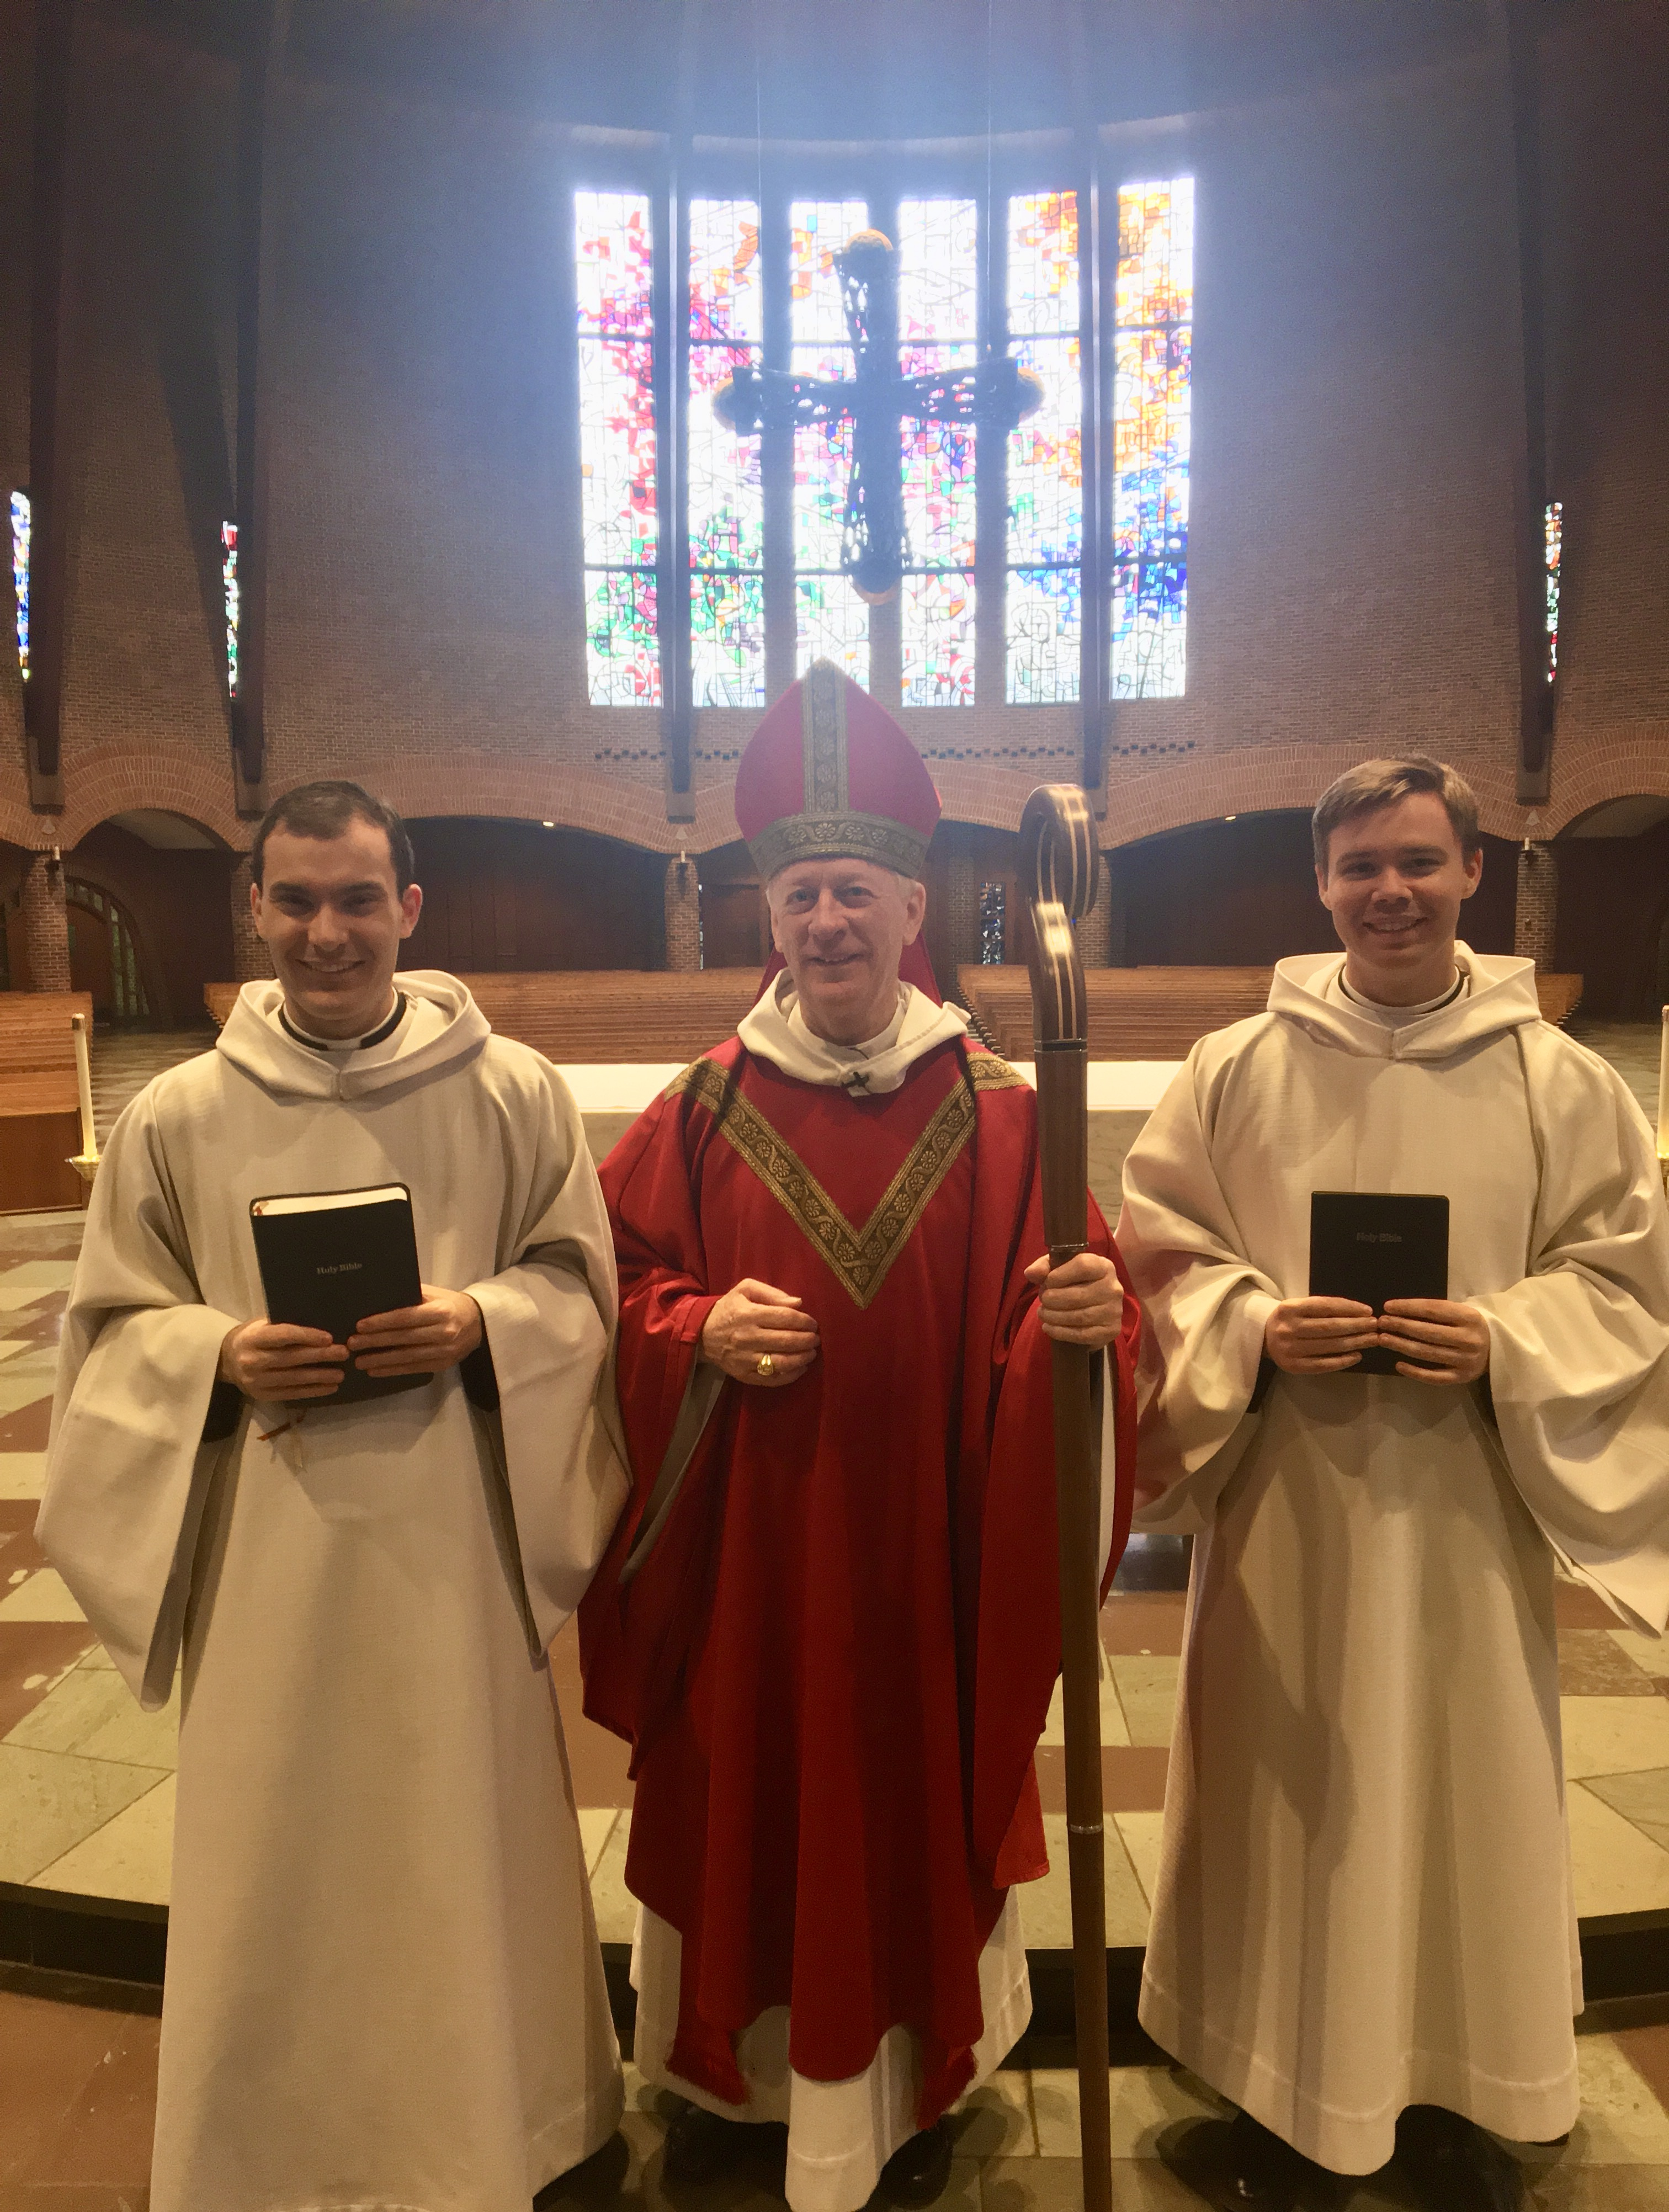 Brother Basil, Abbot Mark, and Brother Titus